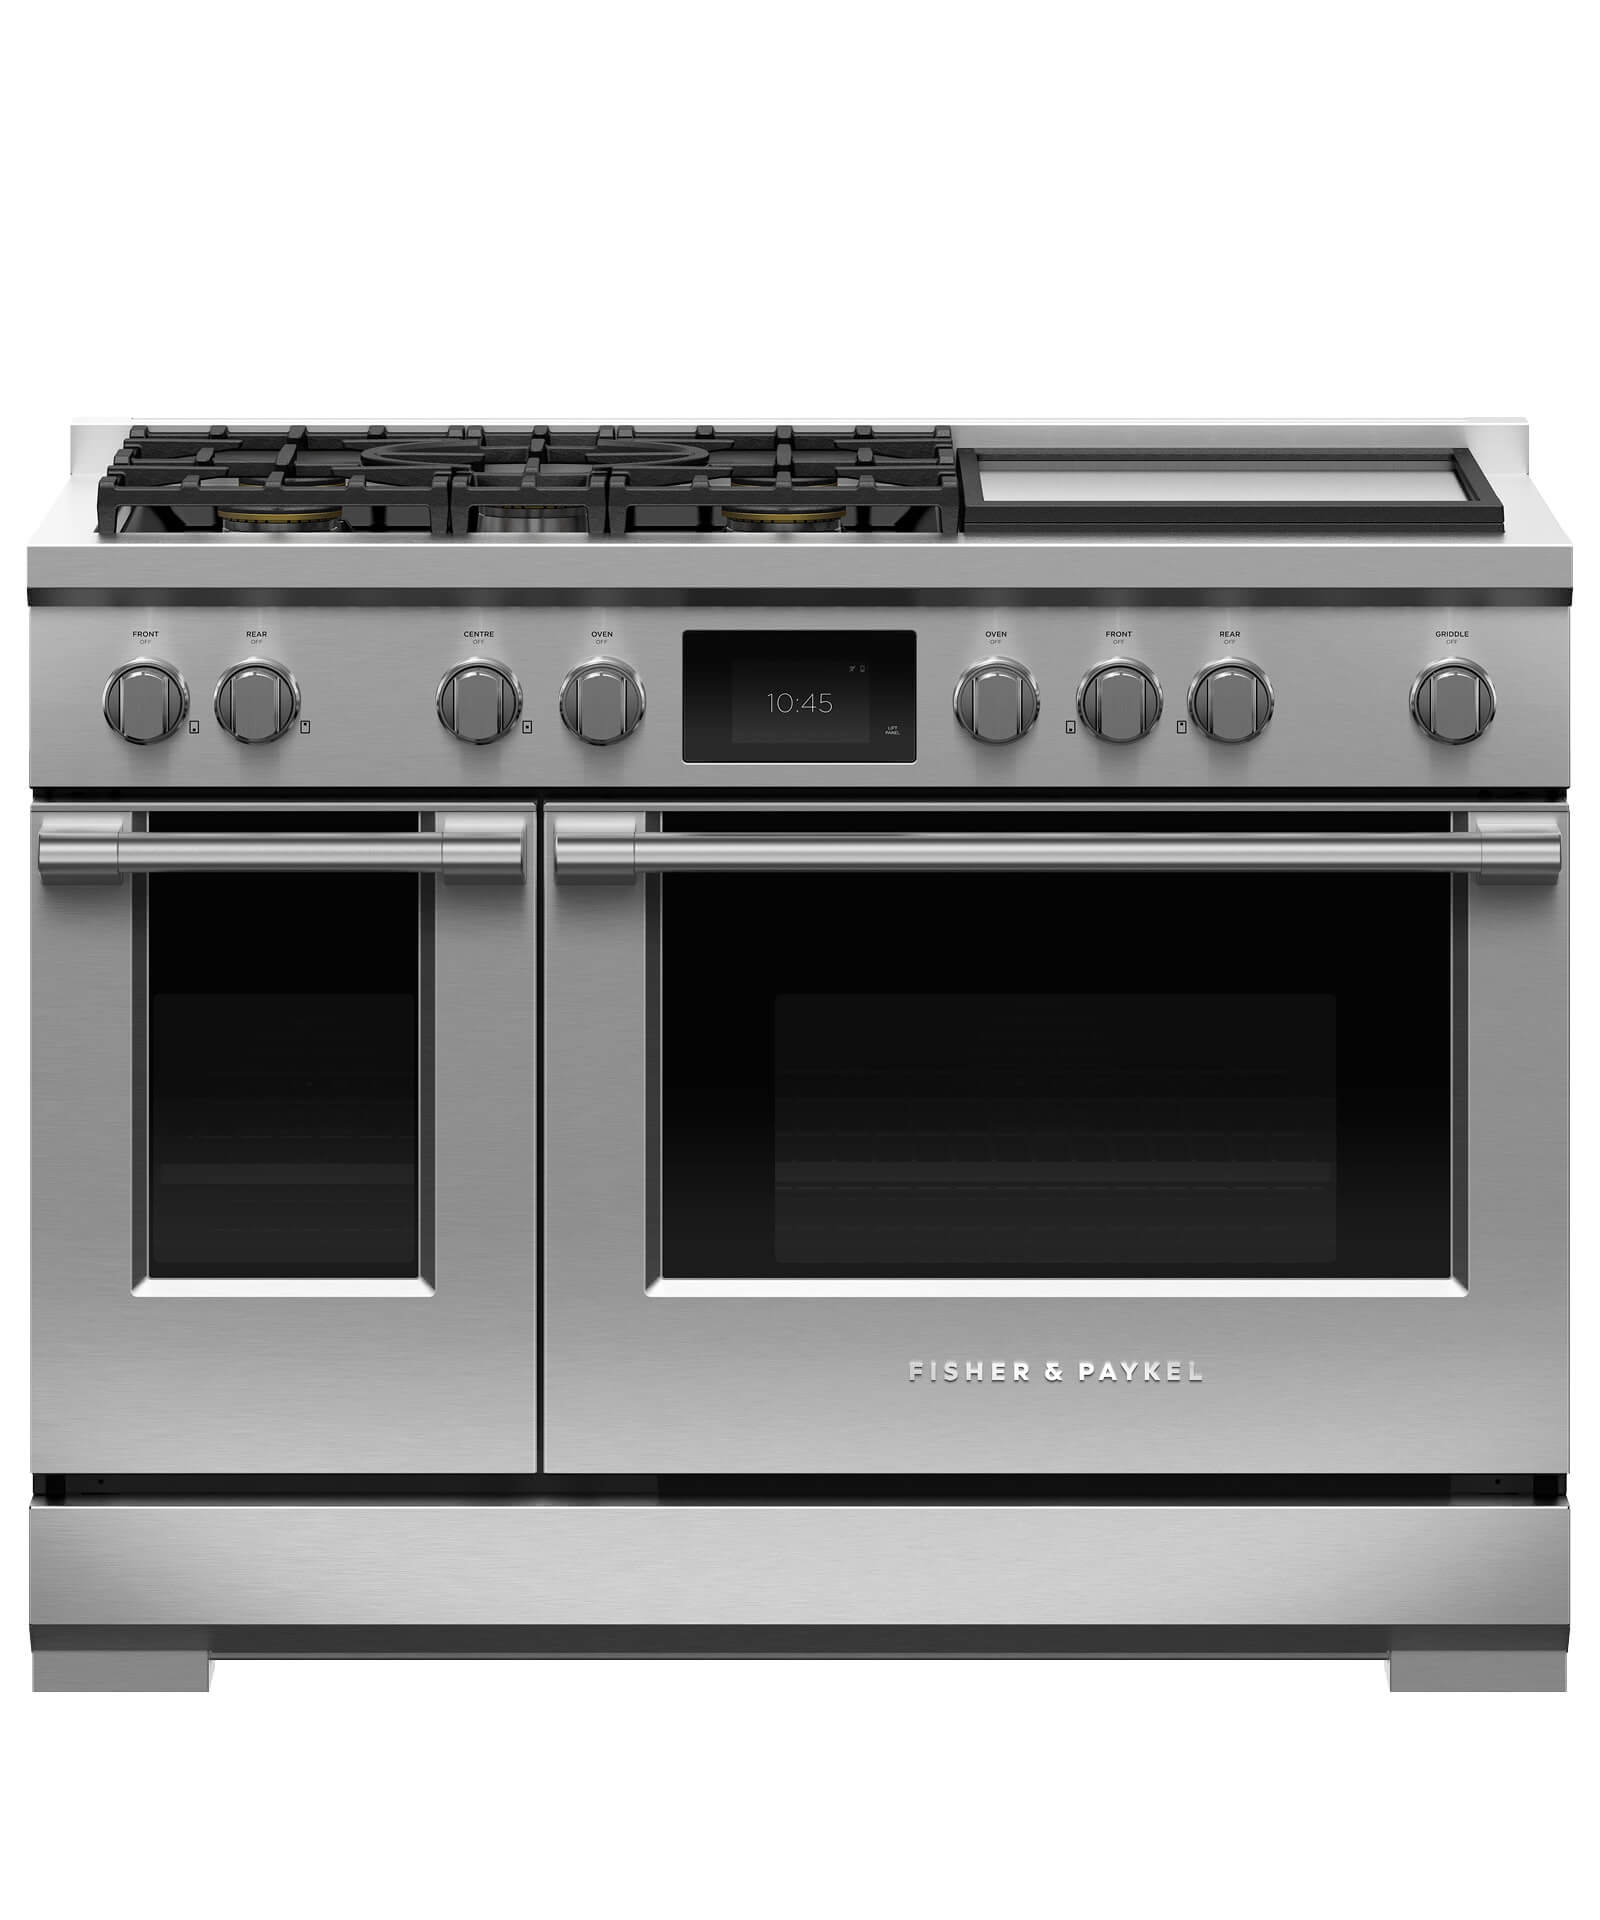 "Fisher and Paykel Dual Fuel Range, 48"", 5 Burners with Griddle,LPG"